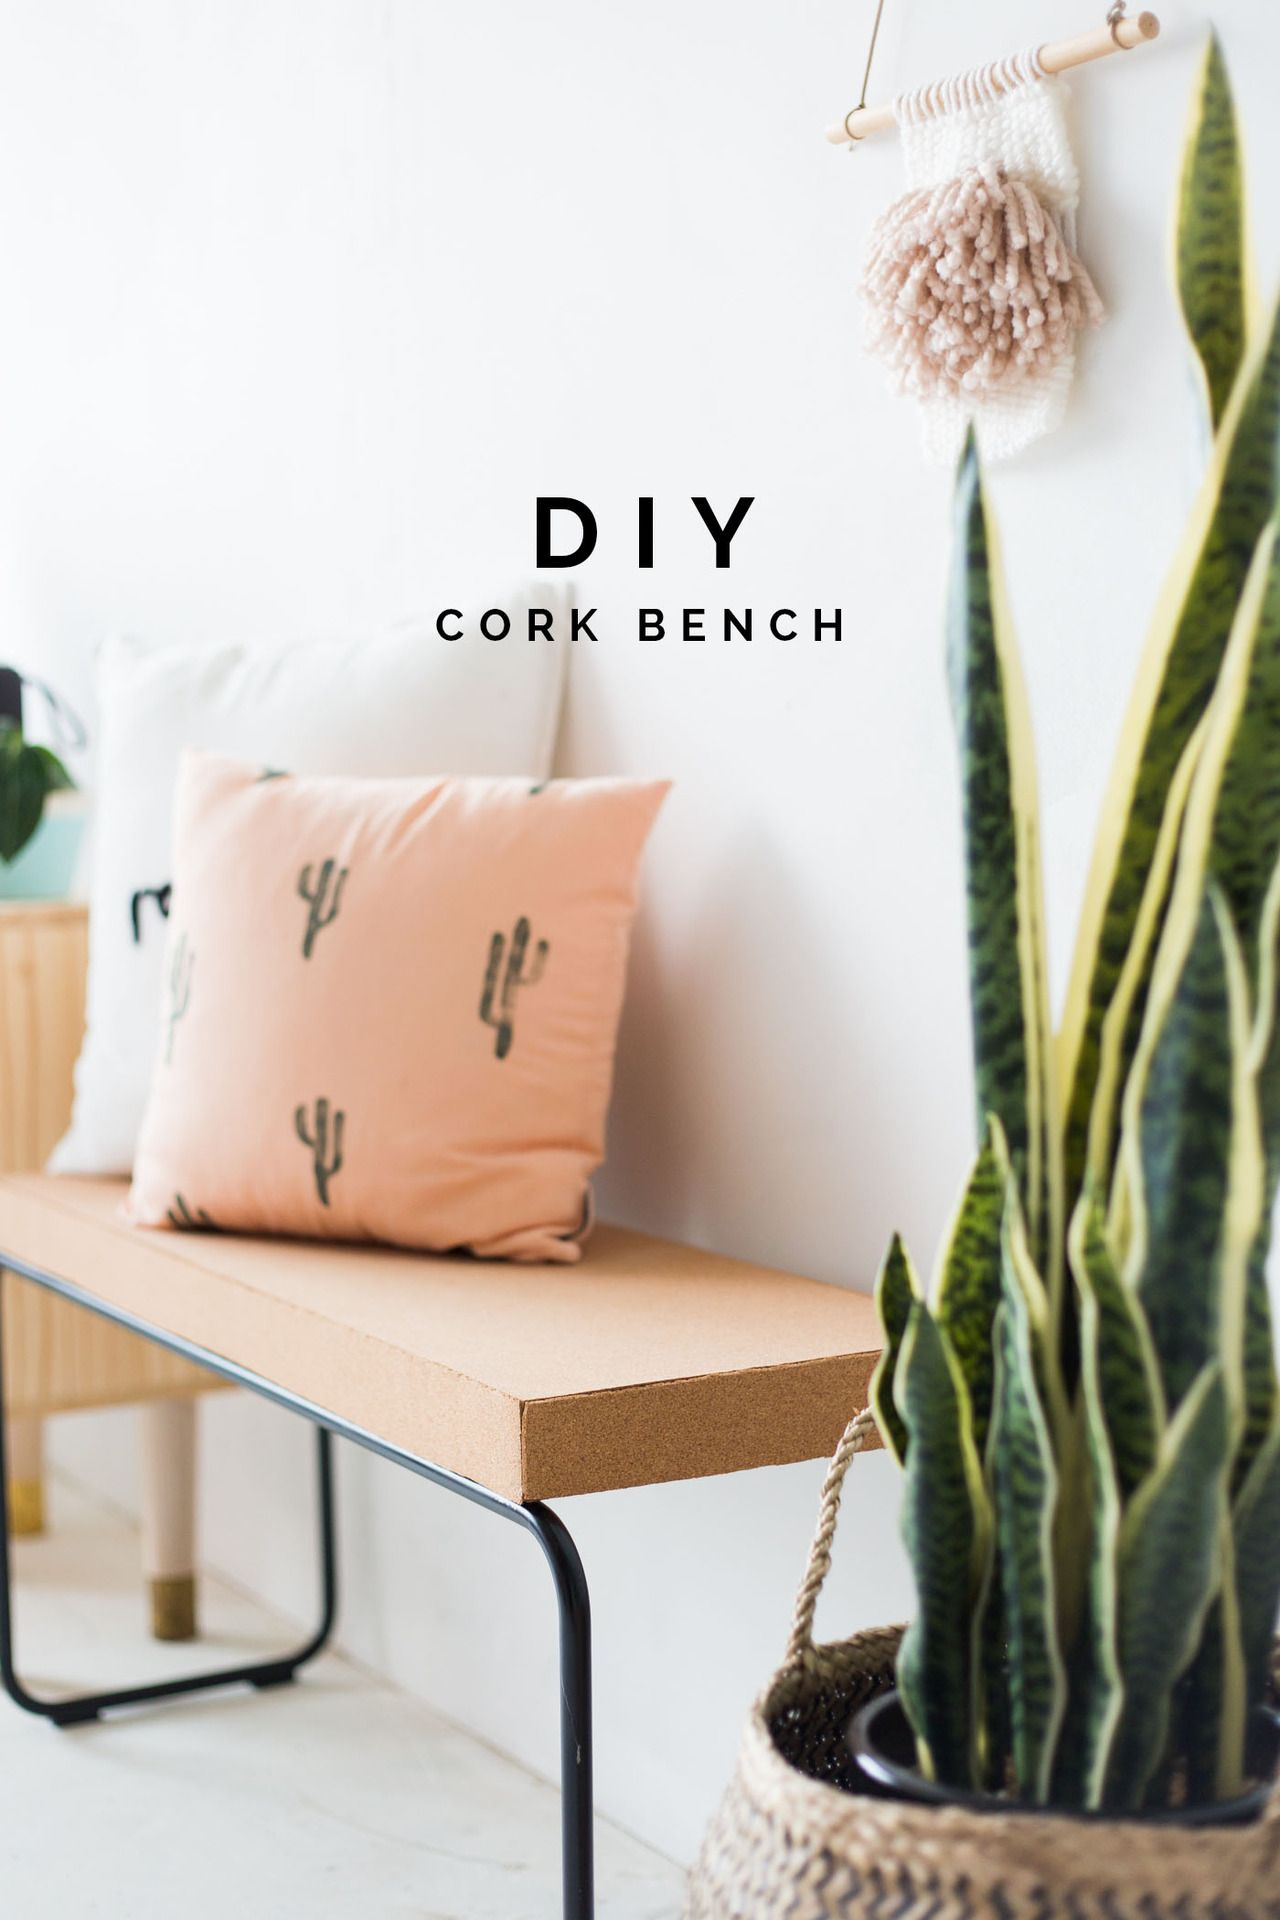 Möbel Basteln Make This Diy Cork Bench And Makeover Your Old Furniture